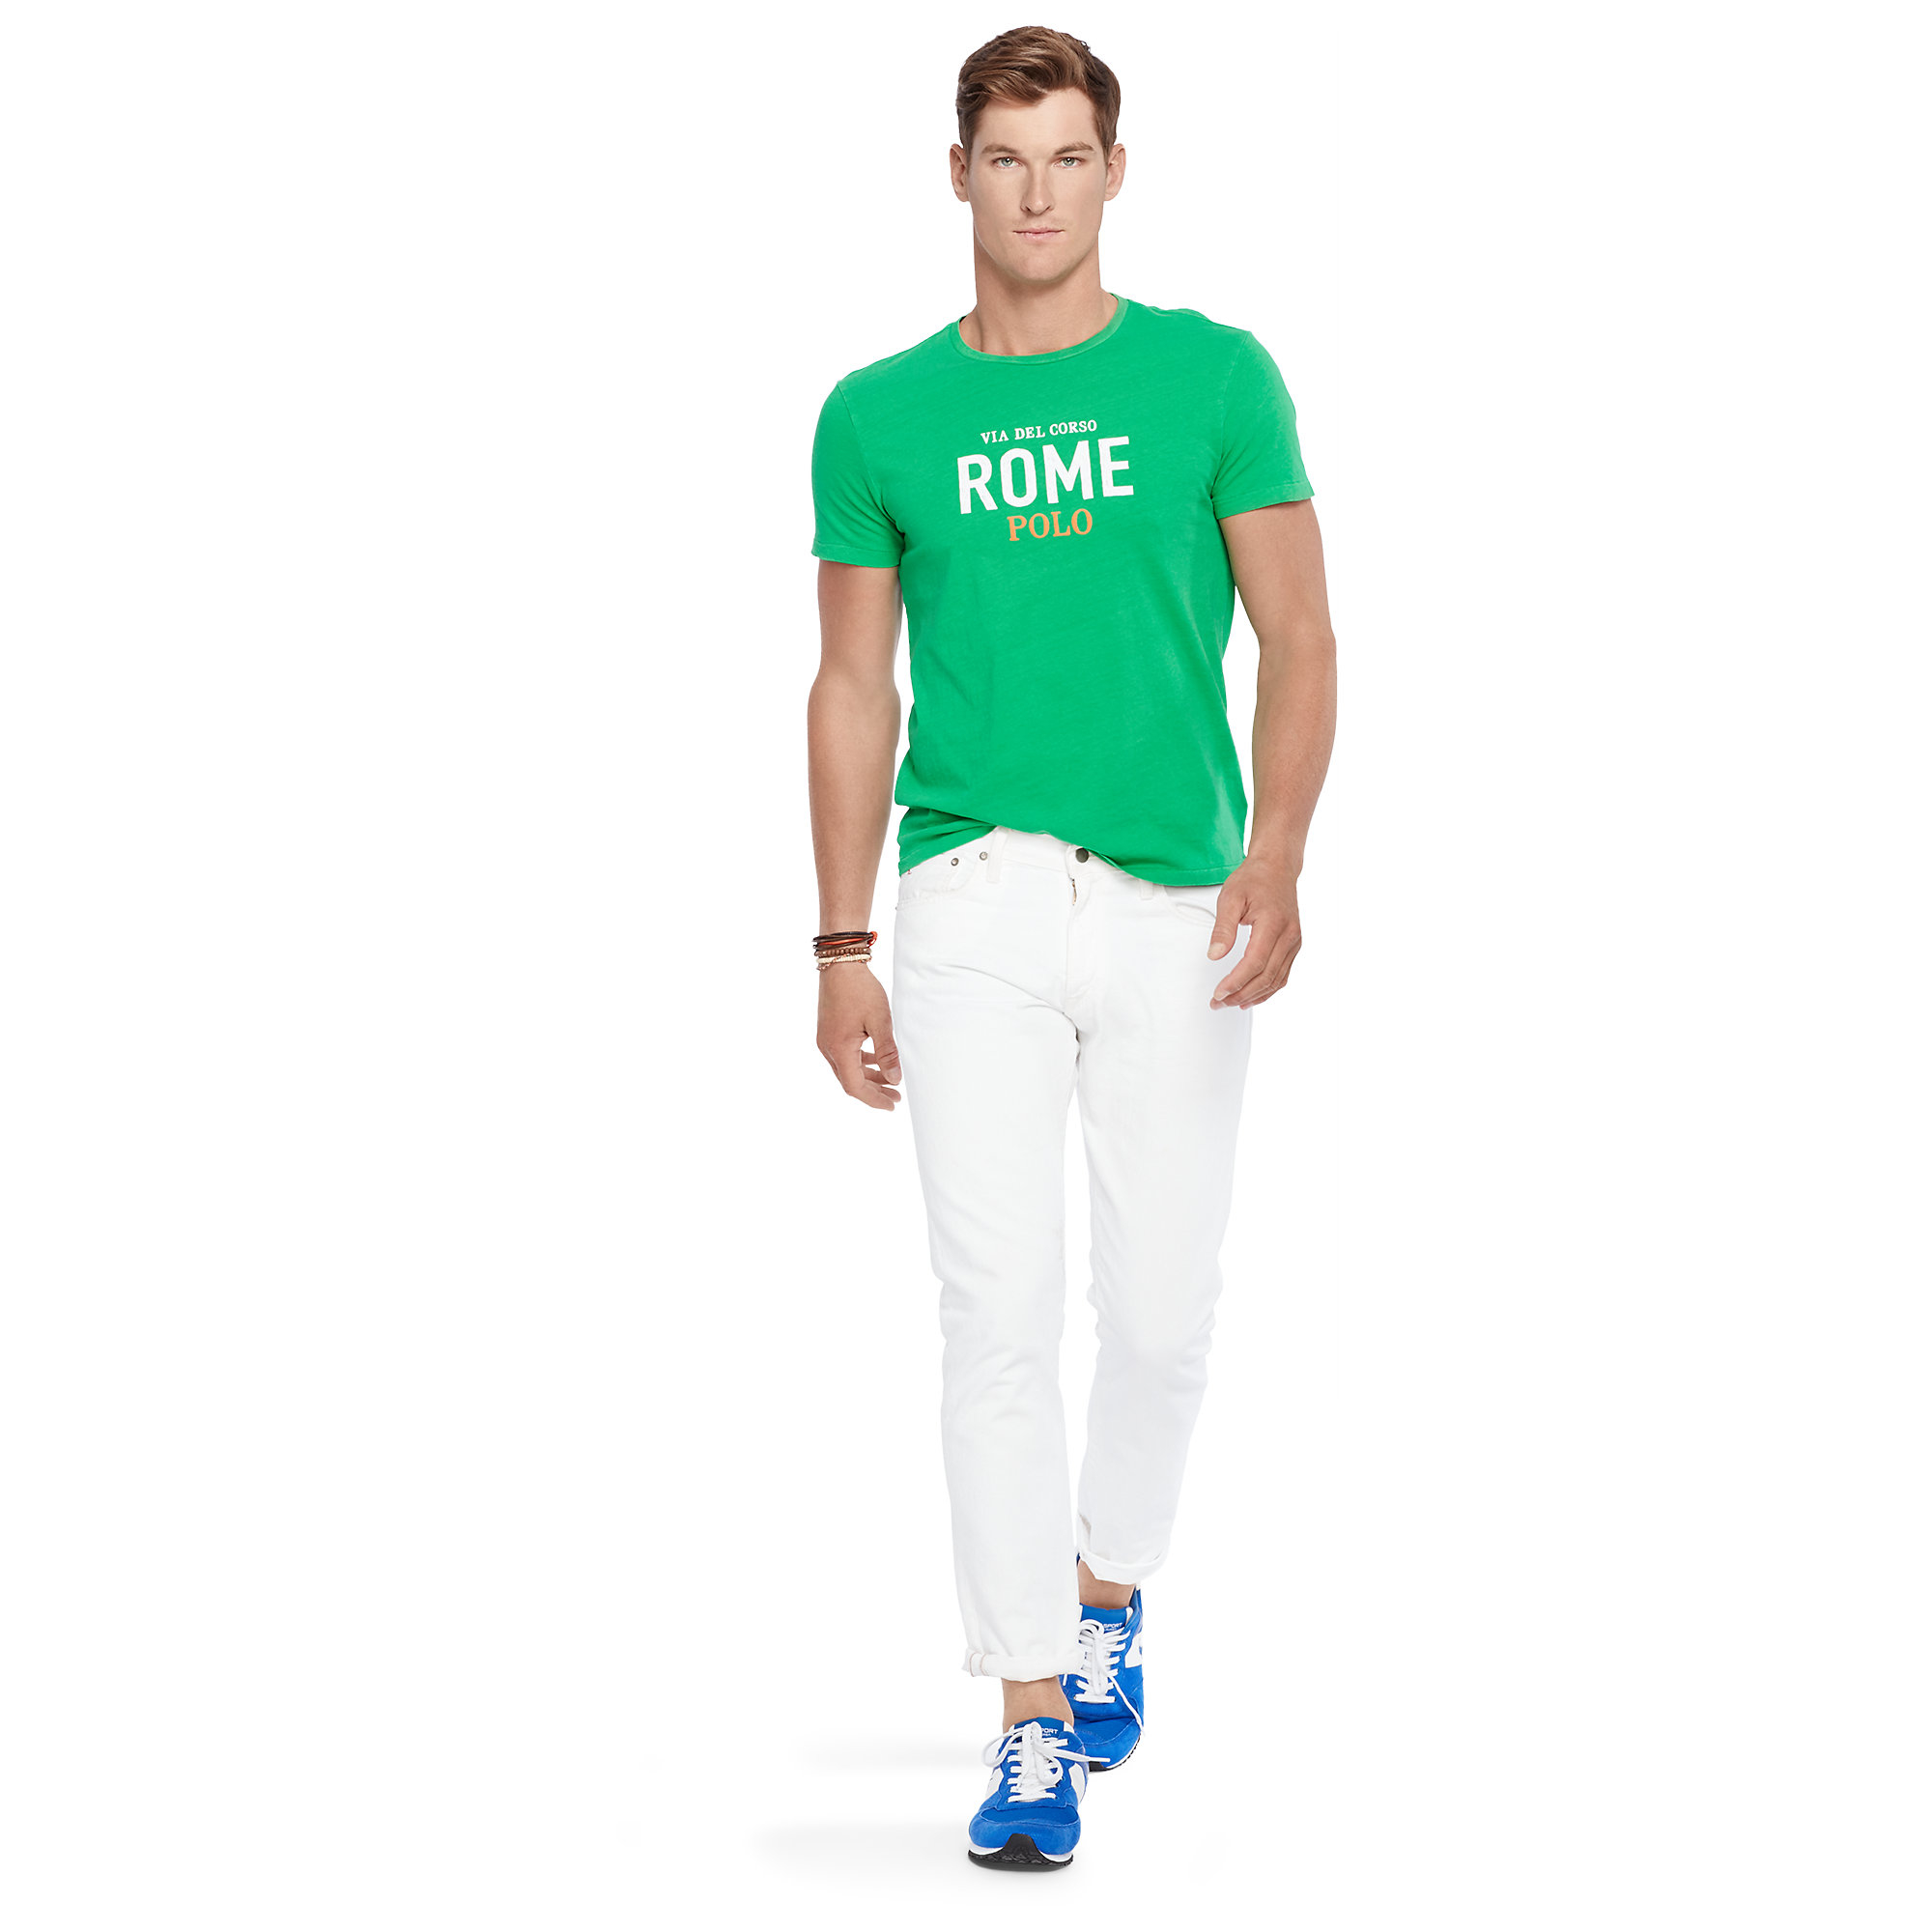 polo ralph lauren custom fit graphic t shirt in green for. Black Bedroom Furniture Sets. Home Design Ideas